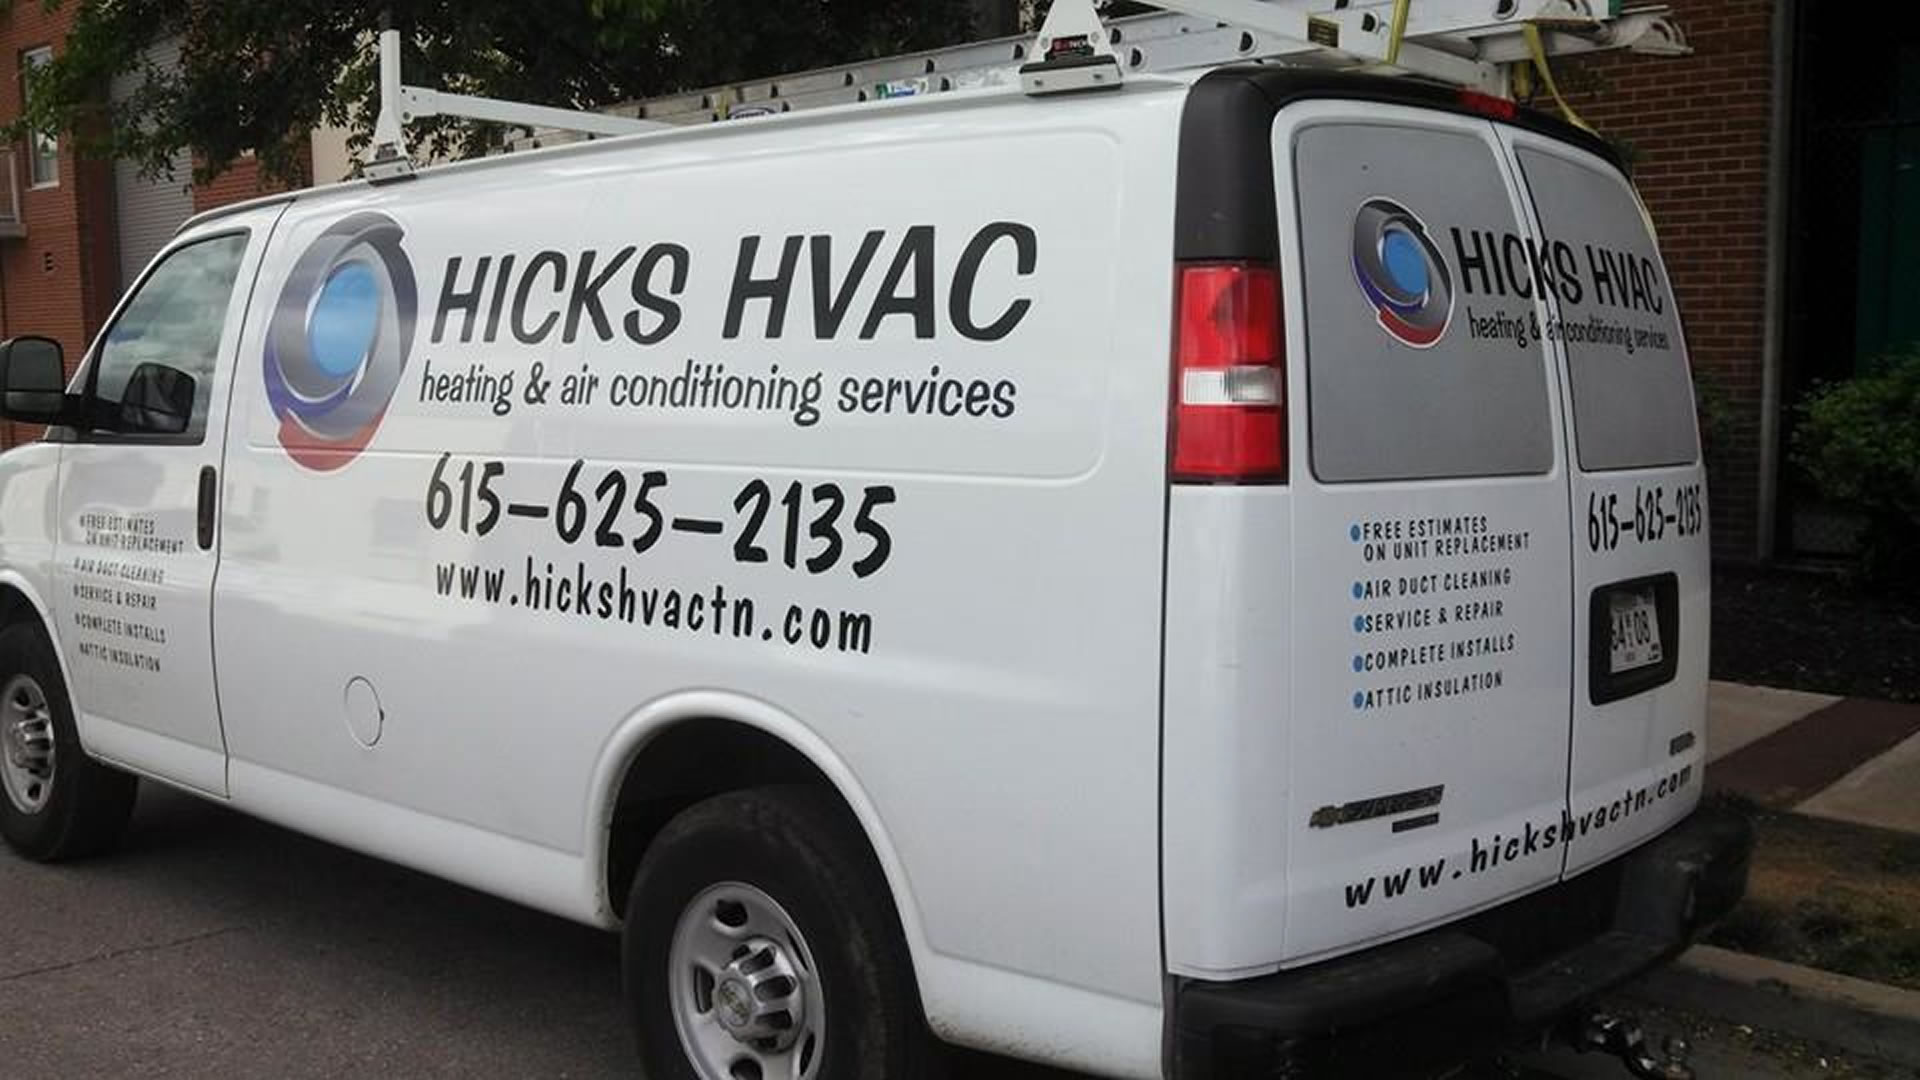 Why Choose Hicks Hvac Services In Nashville Tn  Welcome. Disputing Credit Report Online. First Nation Credit Card Storage Rental Space. Northern Virginia Community College Online. High Interest Online Bank Internet Orem Utah. Simply Driven Executive Search. Electrician San Bernardino It Audit Services. Veteran Life Insurance Company. How To Improve My Fertility Baby Phone App